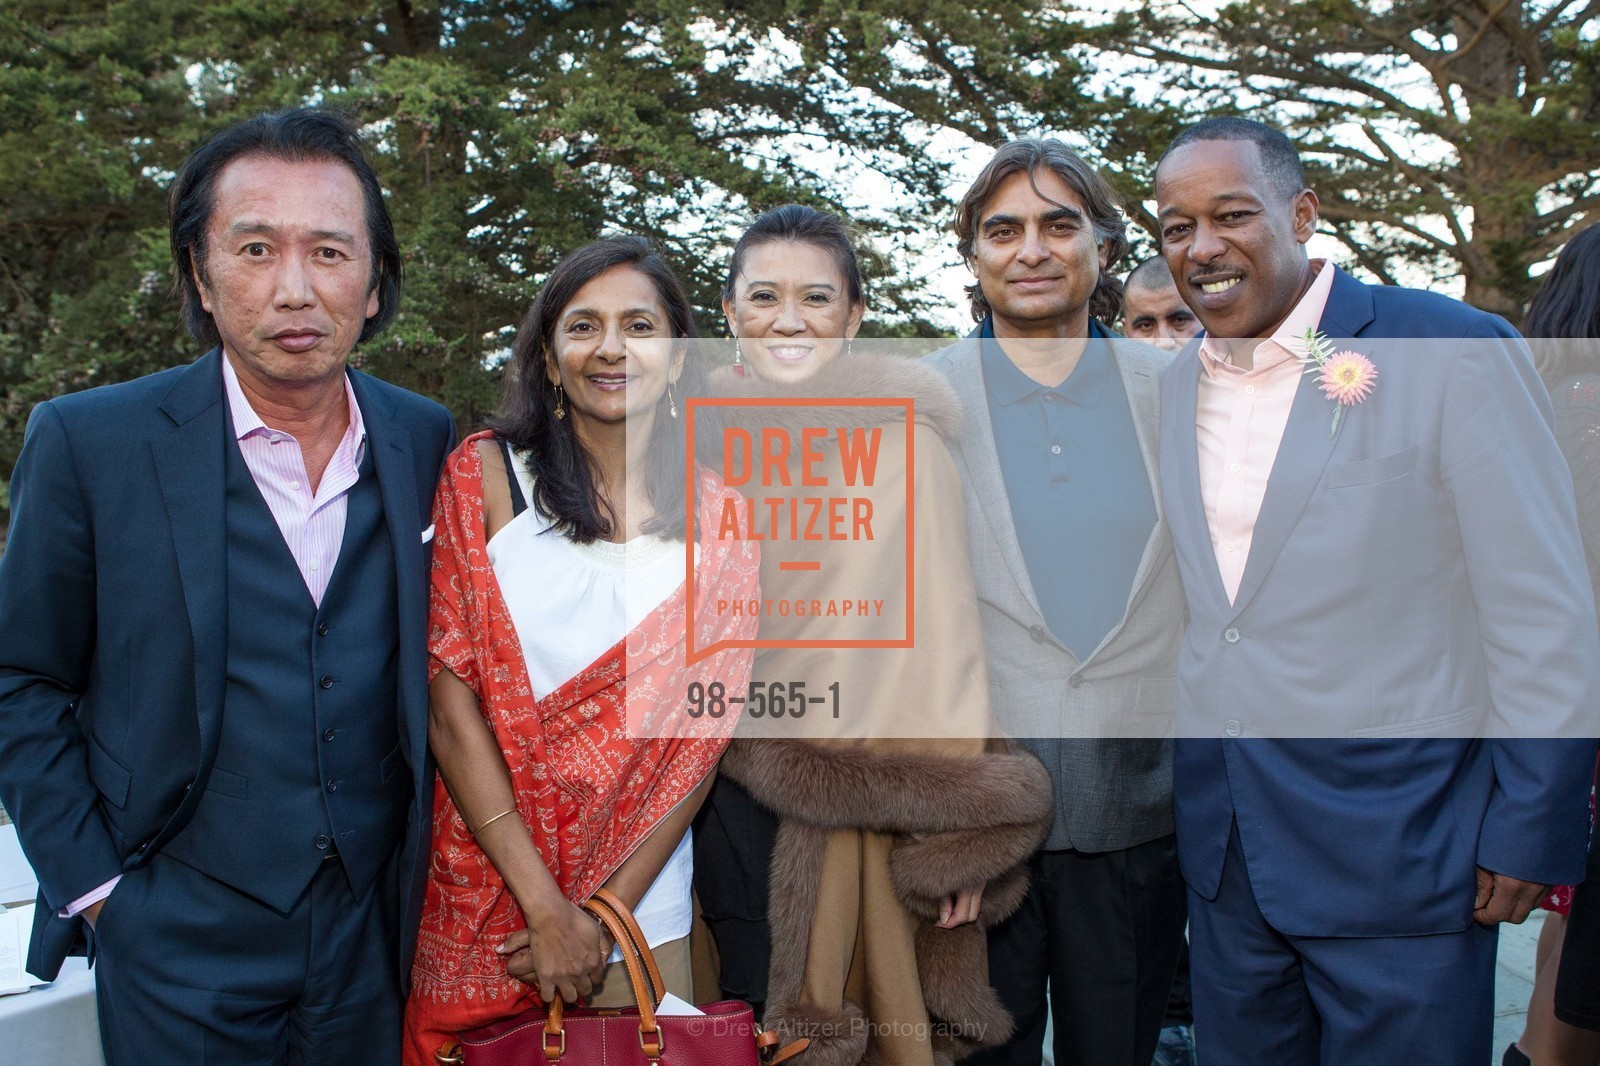 Steve Lau, Sue Jamwal, Mennor Chan, Kavinder Singh, Brook Mebrahtu, GLAAD GALA Kick-Off Party Hosted by SAKS FIFTH AVENUE, Saks Fifth Avenue. 384 Post Street, September 12th, 2014,Drew Altizer, Drew Altizer Photography, full-service agency, private events, San Francisco photographer, photographer california